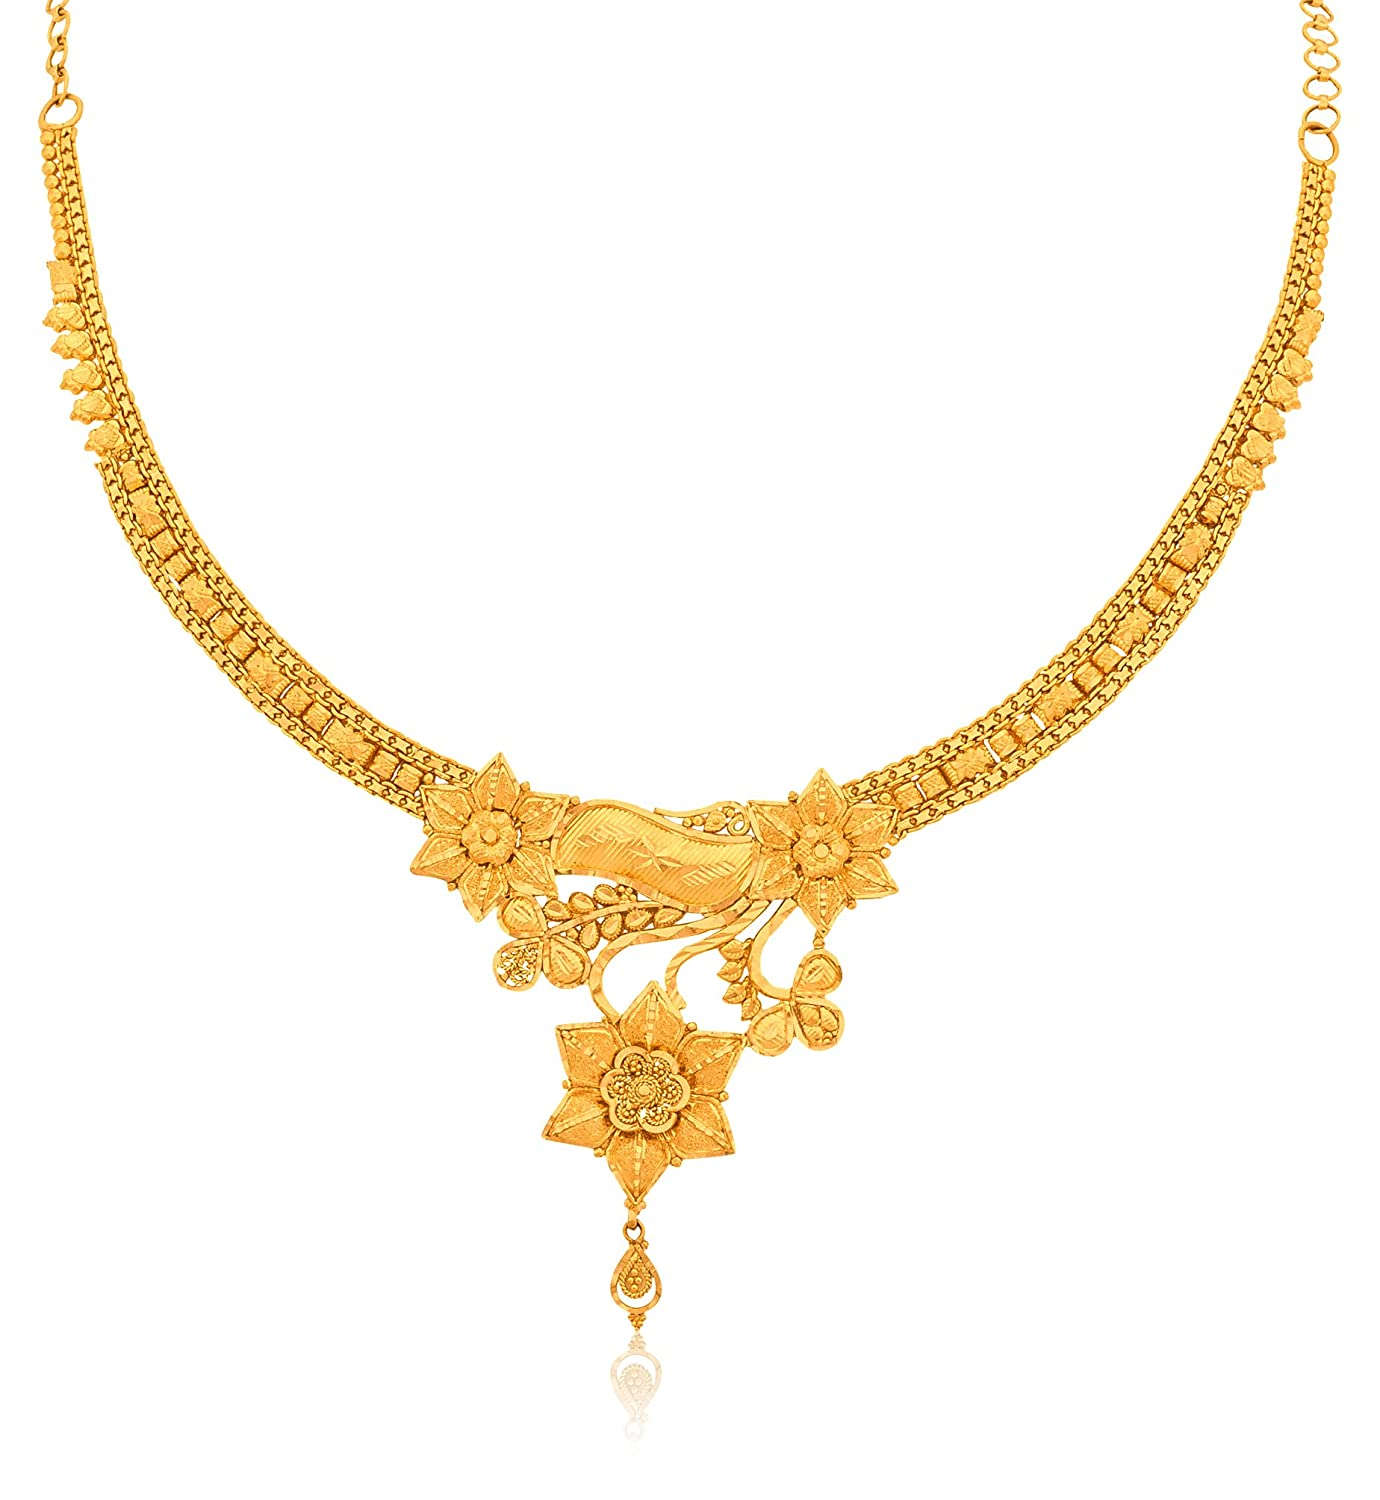 gold opulent h jewelers hermes yellow jewelry necklace diamond